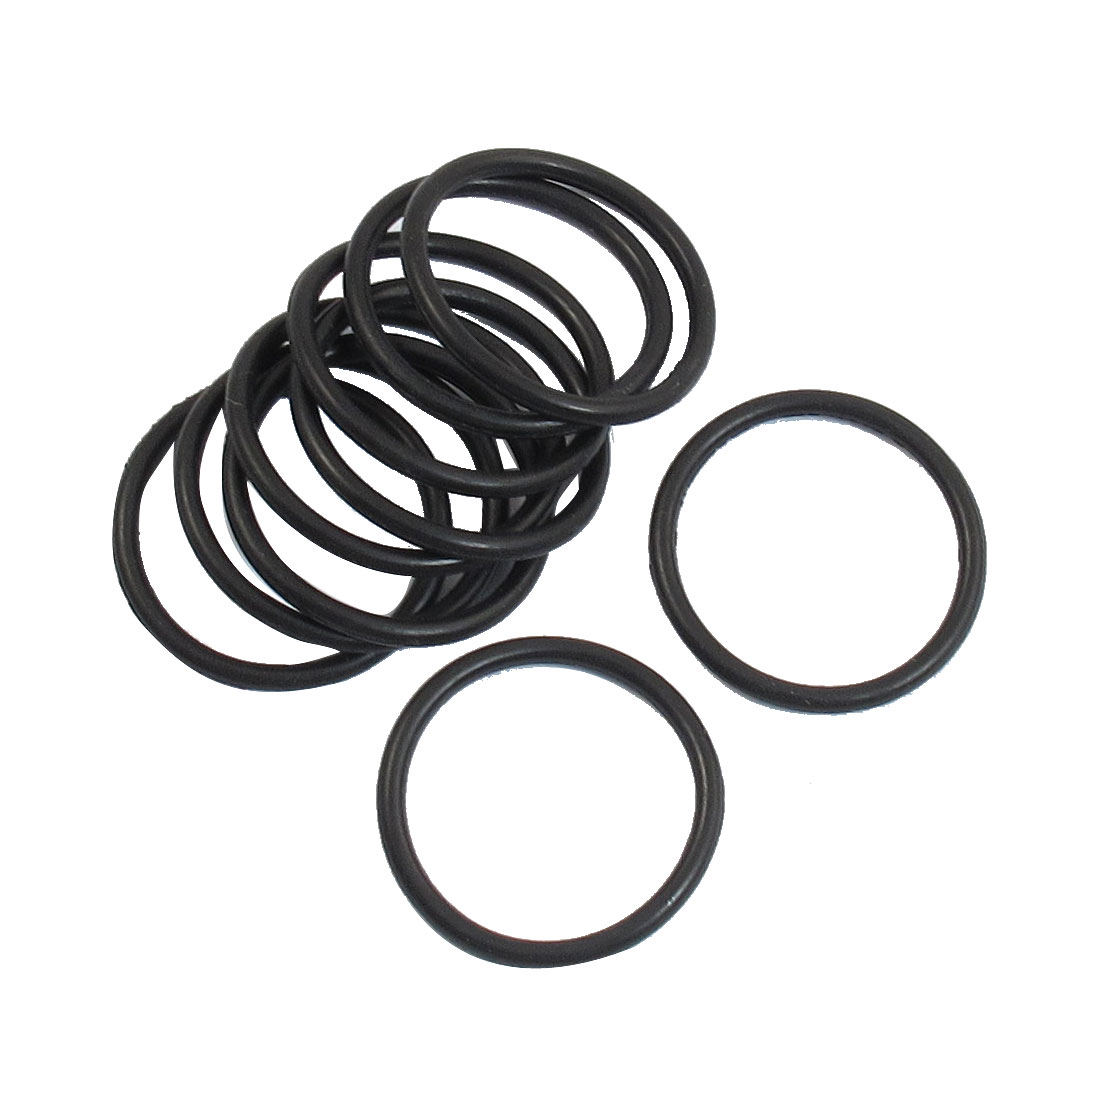 10 Pcs 24mm x 2mm Sealing Washers Oil Filter O Rings Black